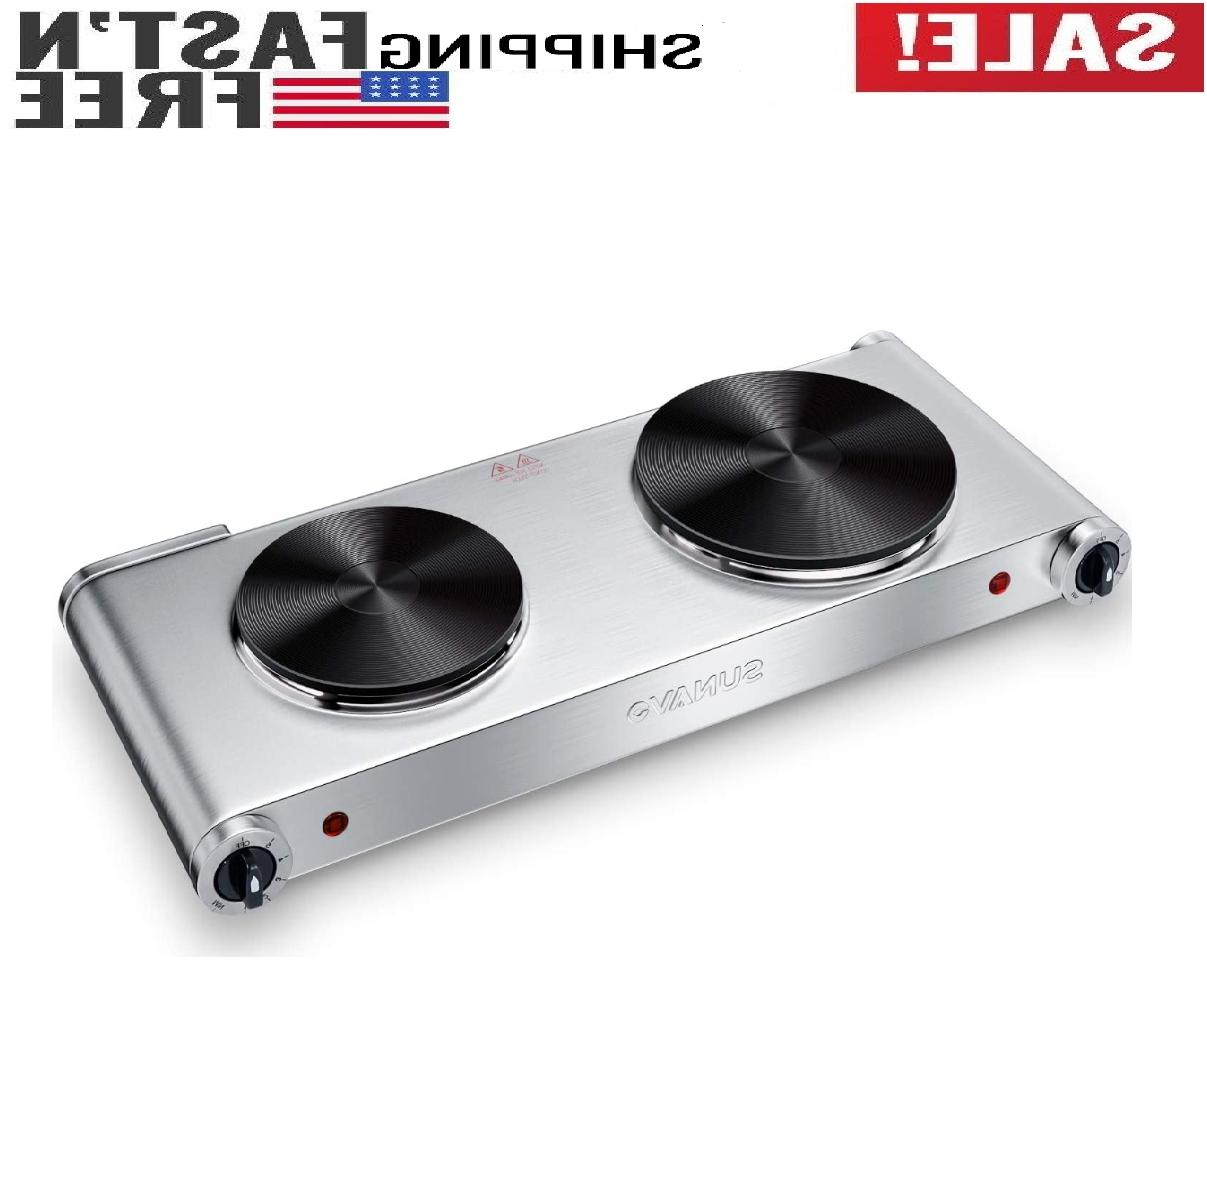 1800w hot plates portable electric double burner